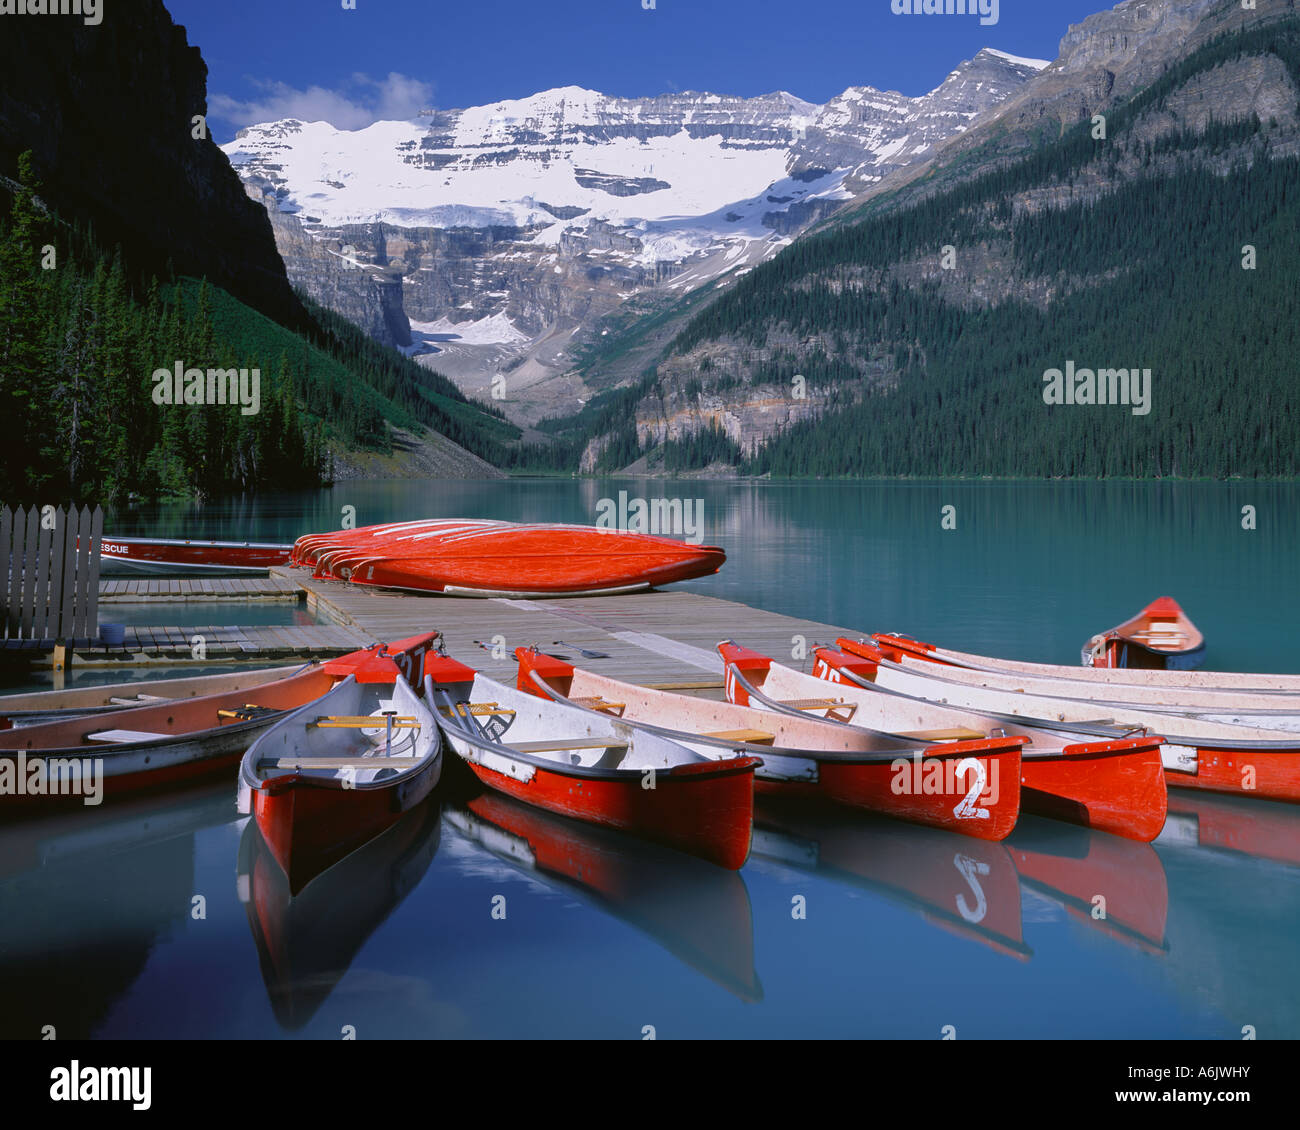 Banff National Park Canada: Red canoes on Lake Louise with Mount Victoria and Victoria Glacier in the distance - Stock Image